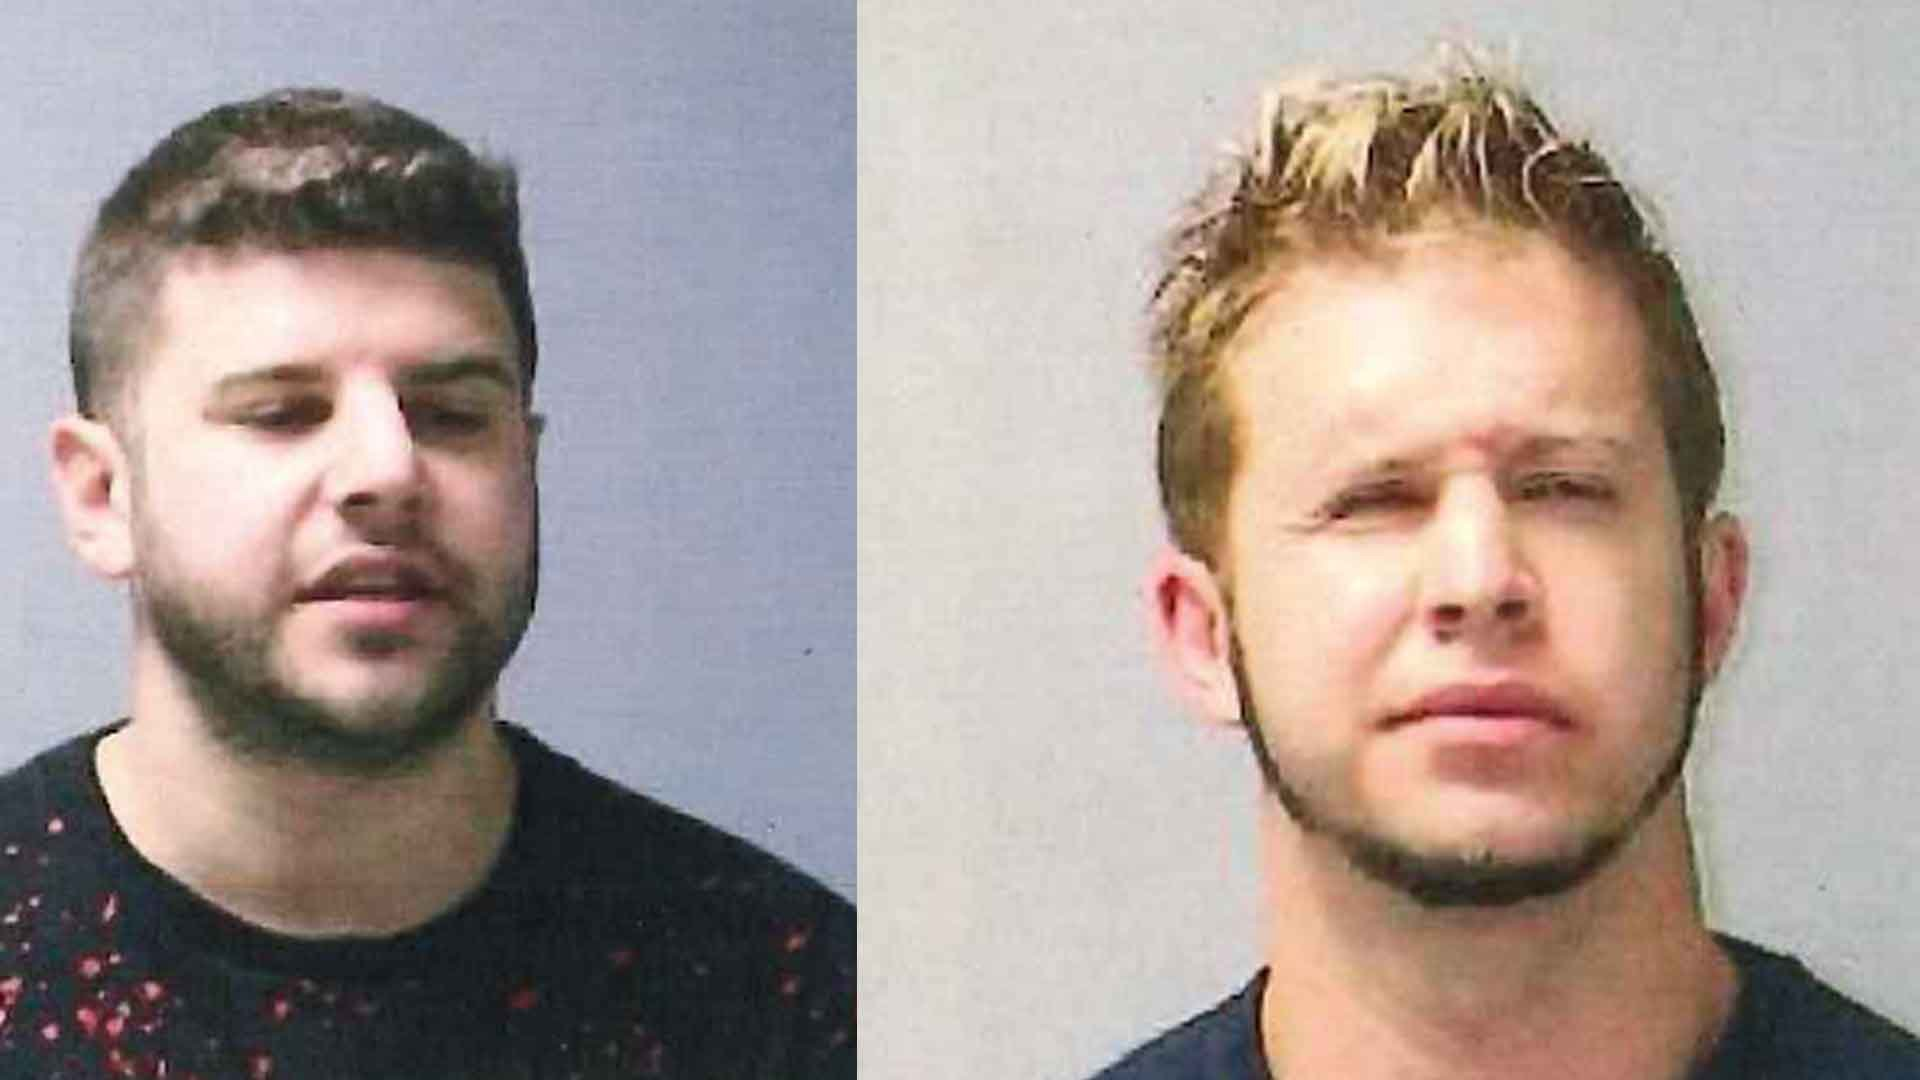 Nicholas and Anthony Diorio were arrested for for shoutingethnic slurs and vulgarity towards a family at Bradley International Airport early Thursday morning.